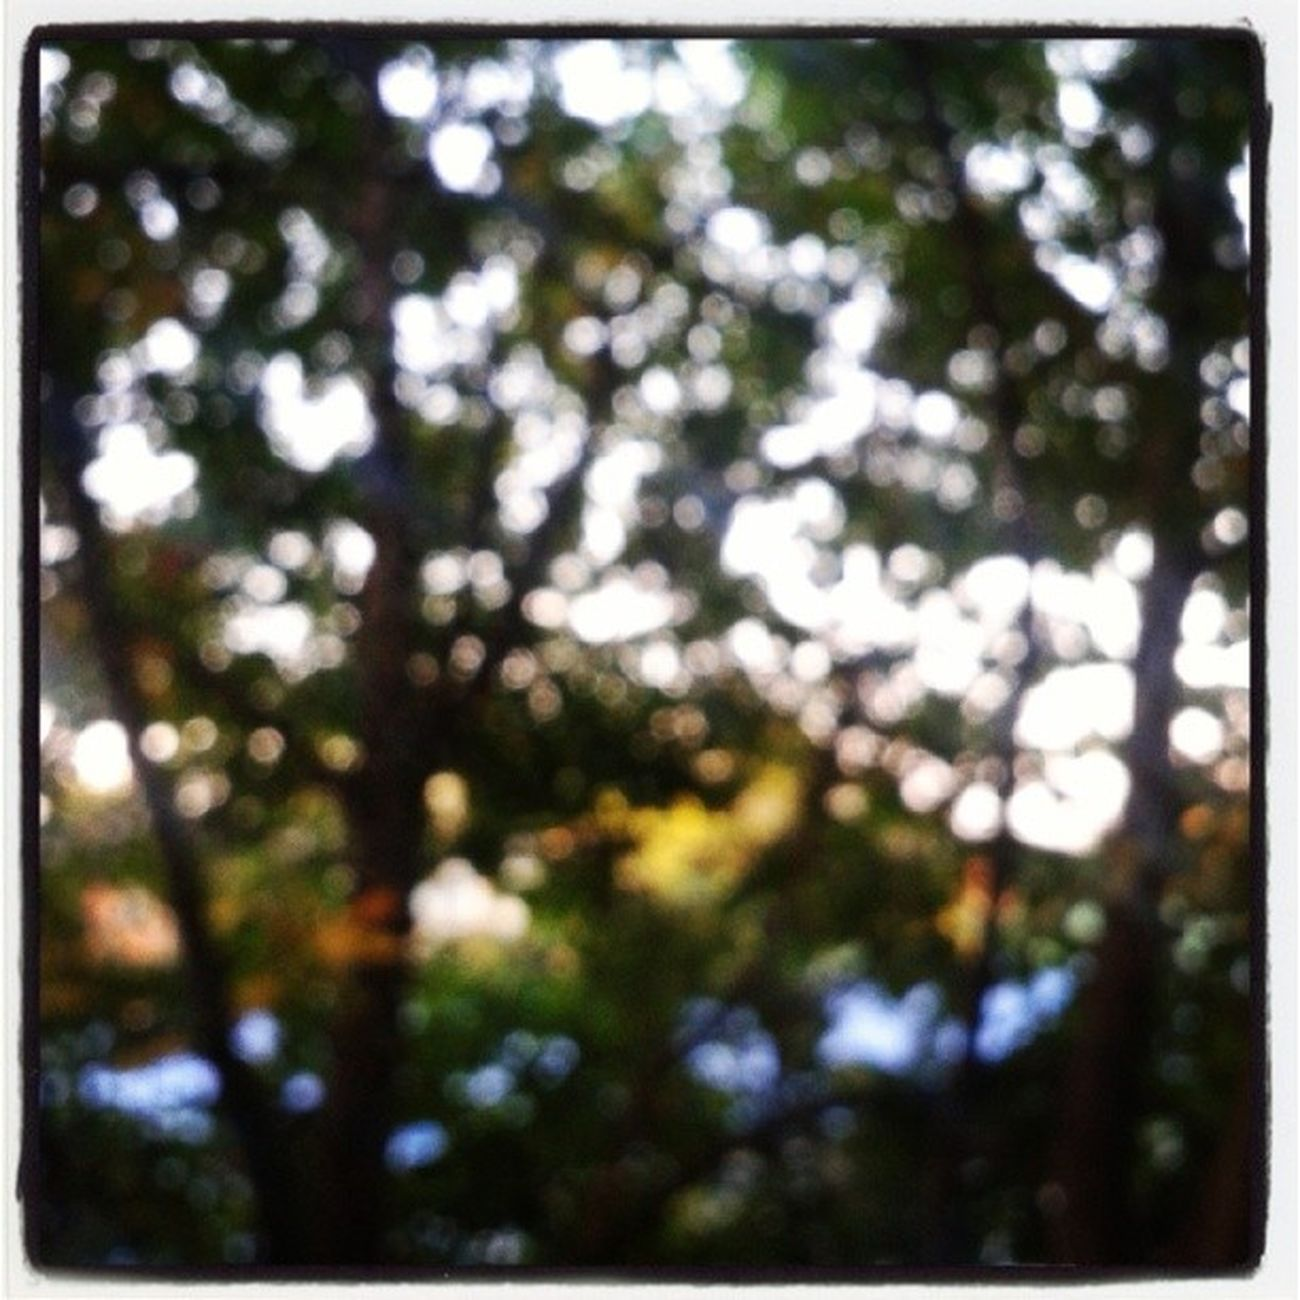 Bokeh. Photography Photo Photos Pic pics TagsForLikes picture pictures snapshot art beautiful instagood picoftheday photooftheday color all_shots exposure composition focus capture moment sun sunset lights